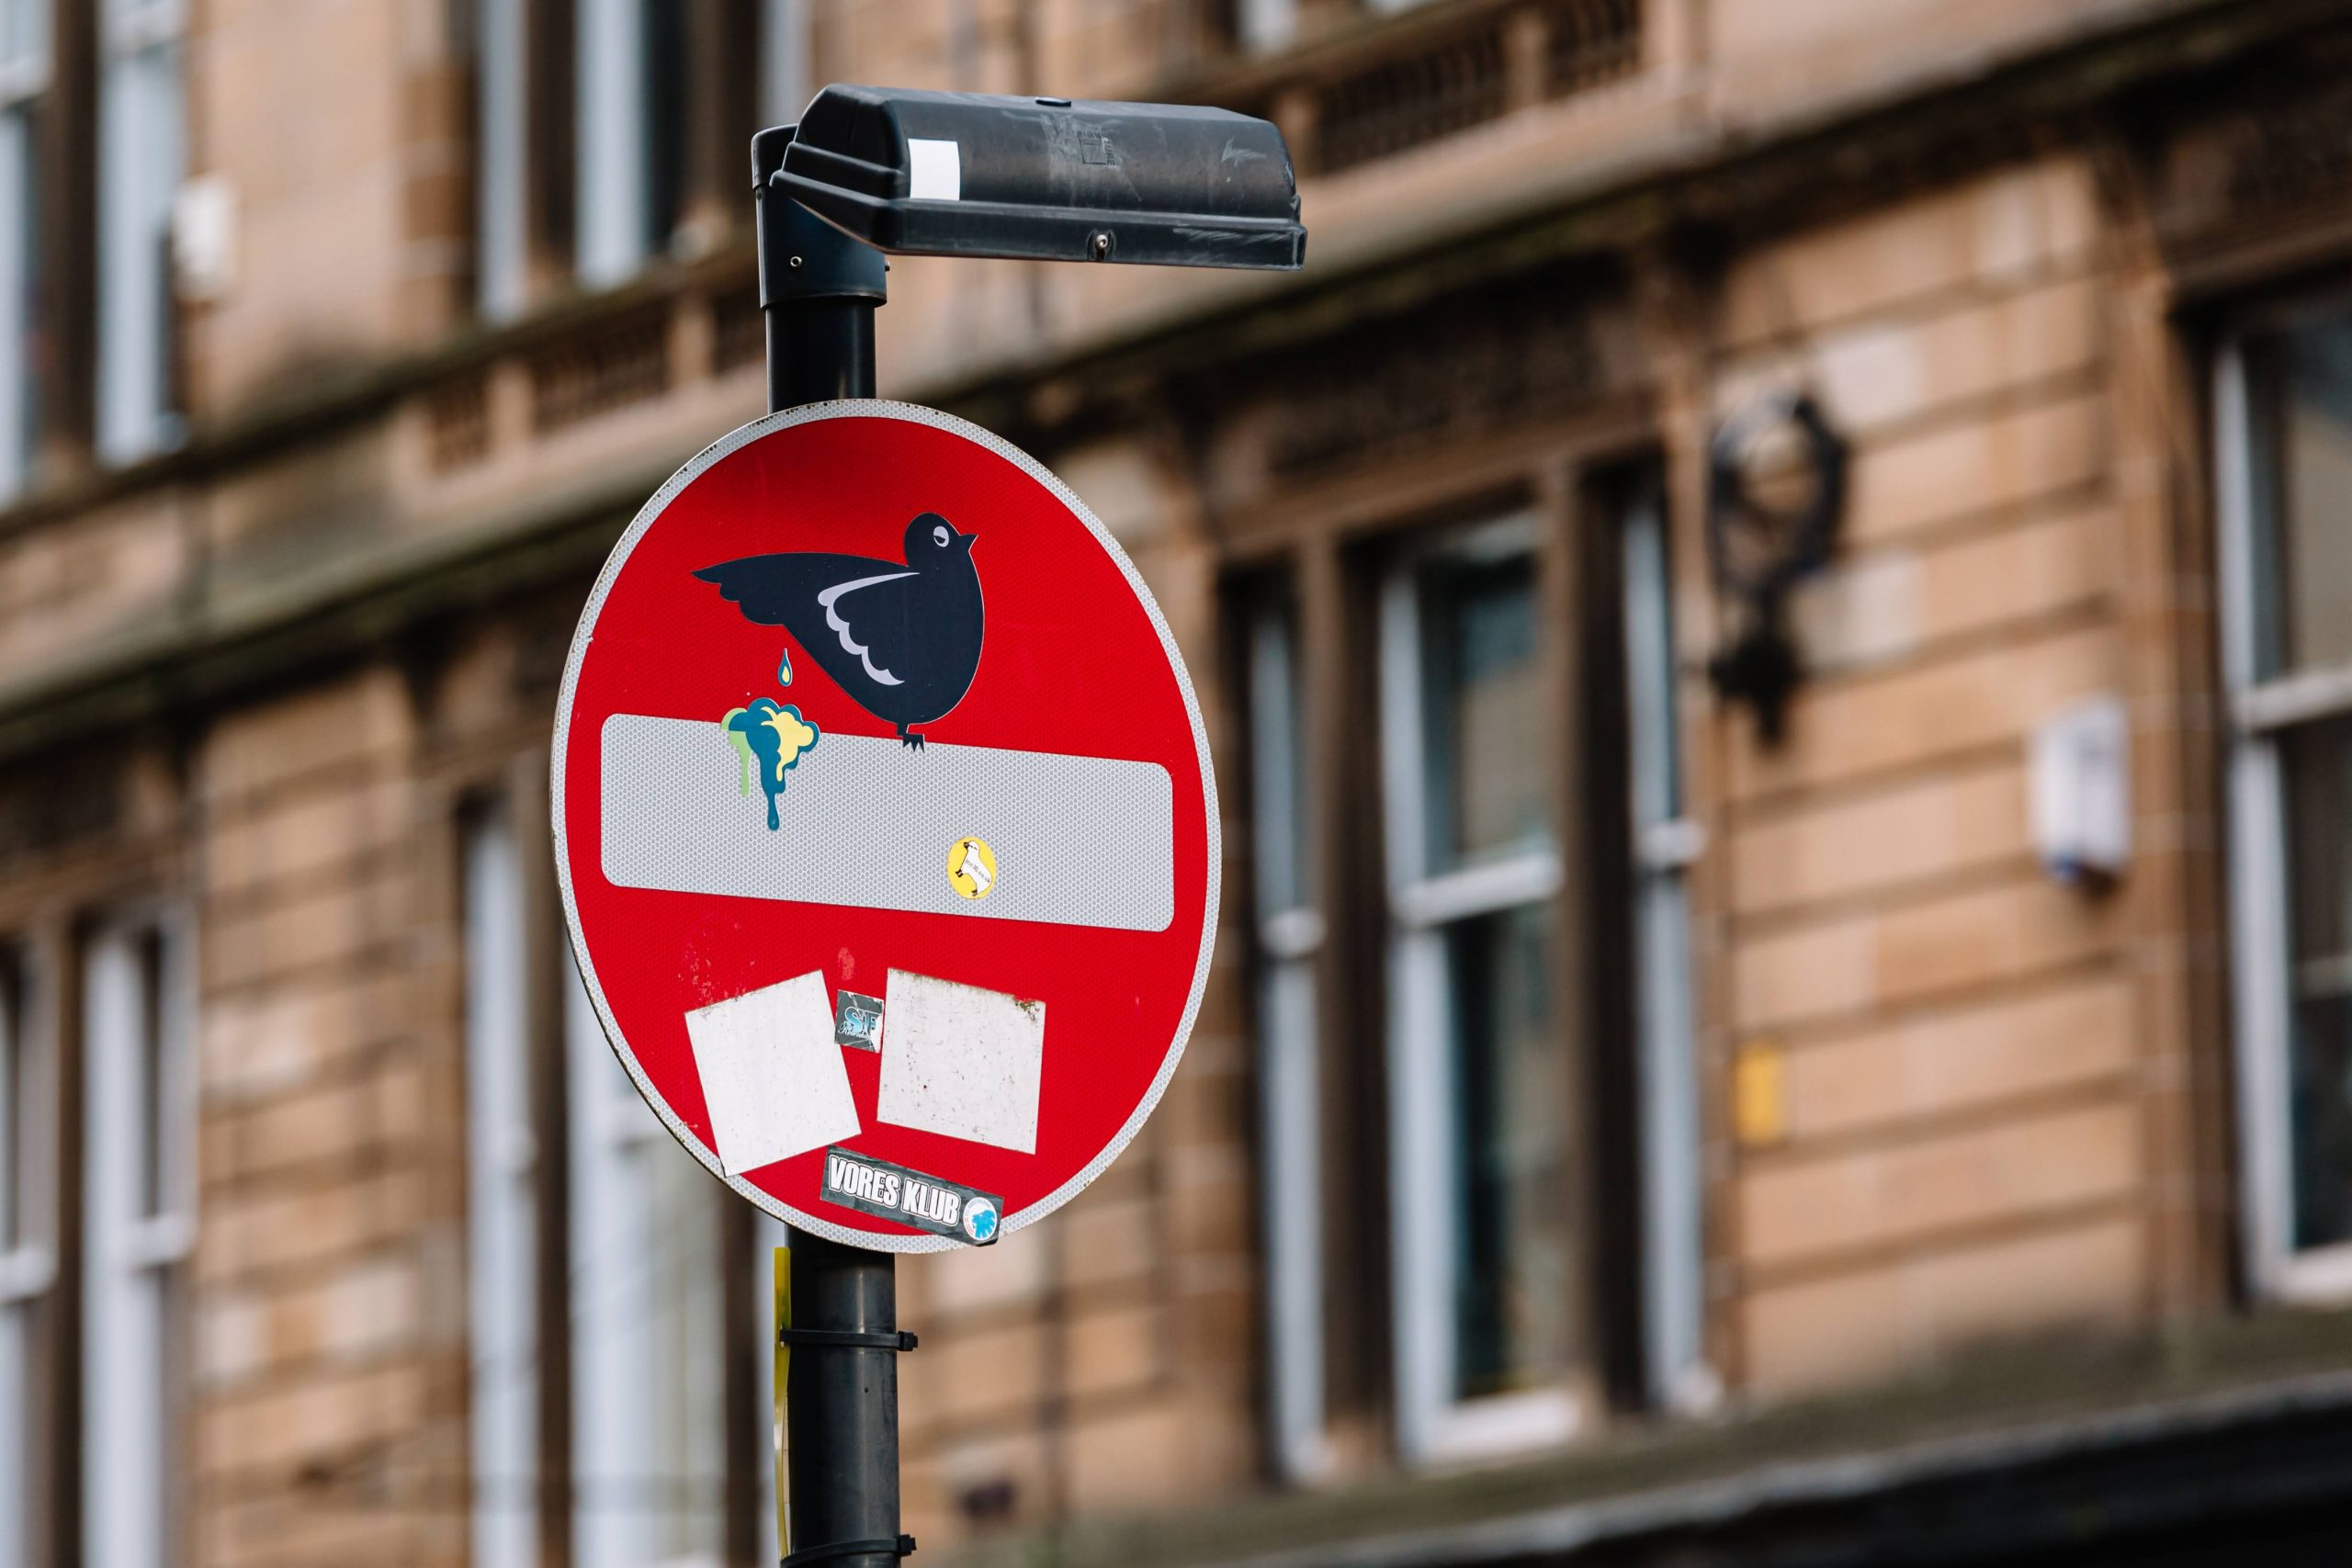 Ambraham Clet's hijacked traffic sign